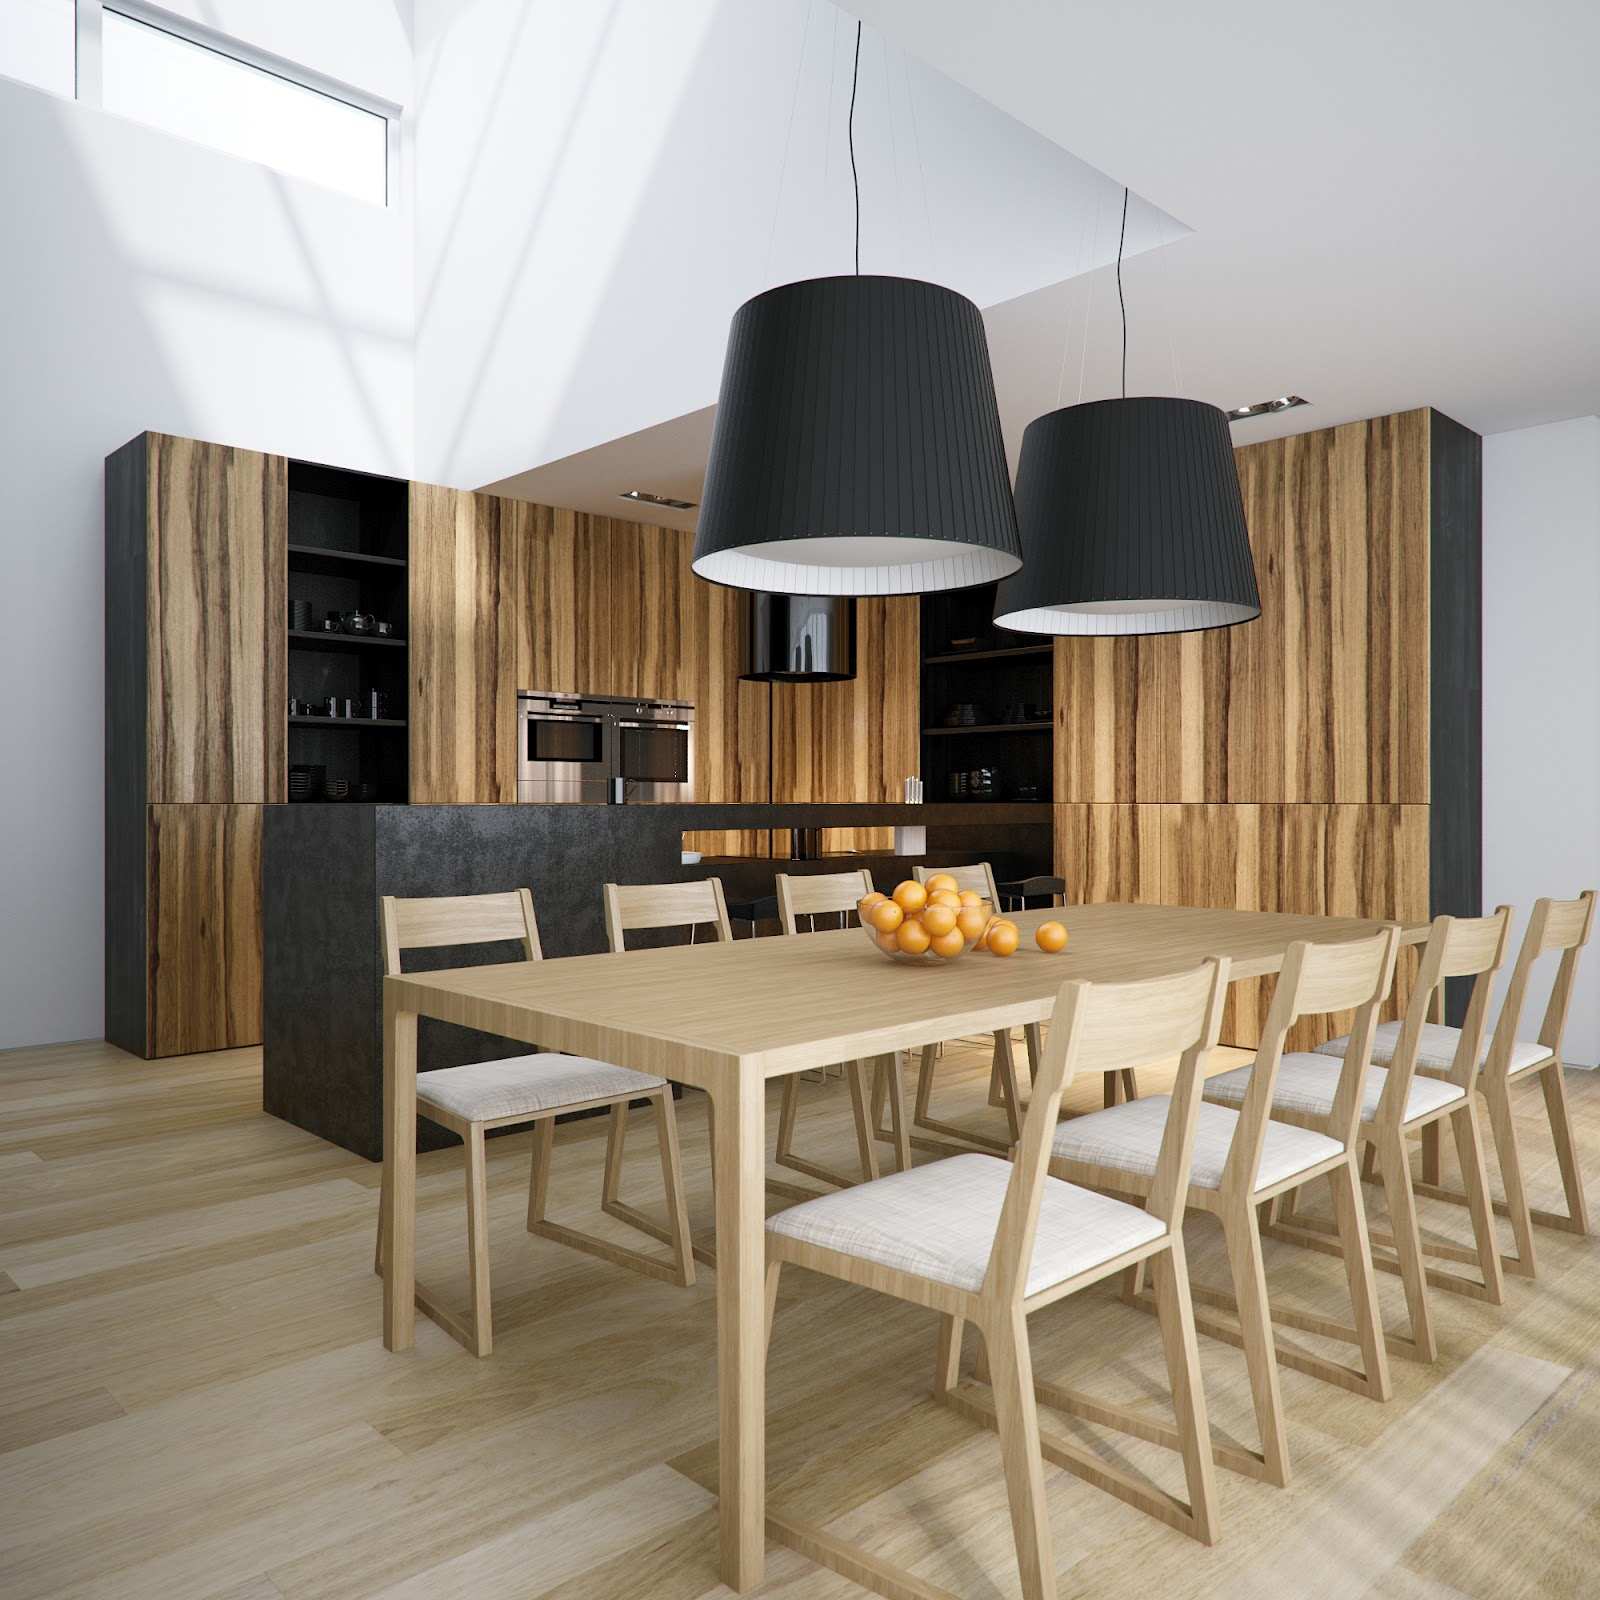 Ideas For Exquisite Built-In Kitchen Tables